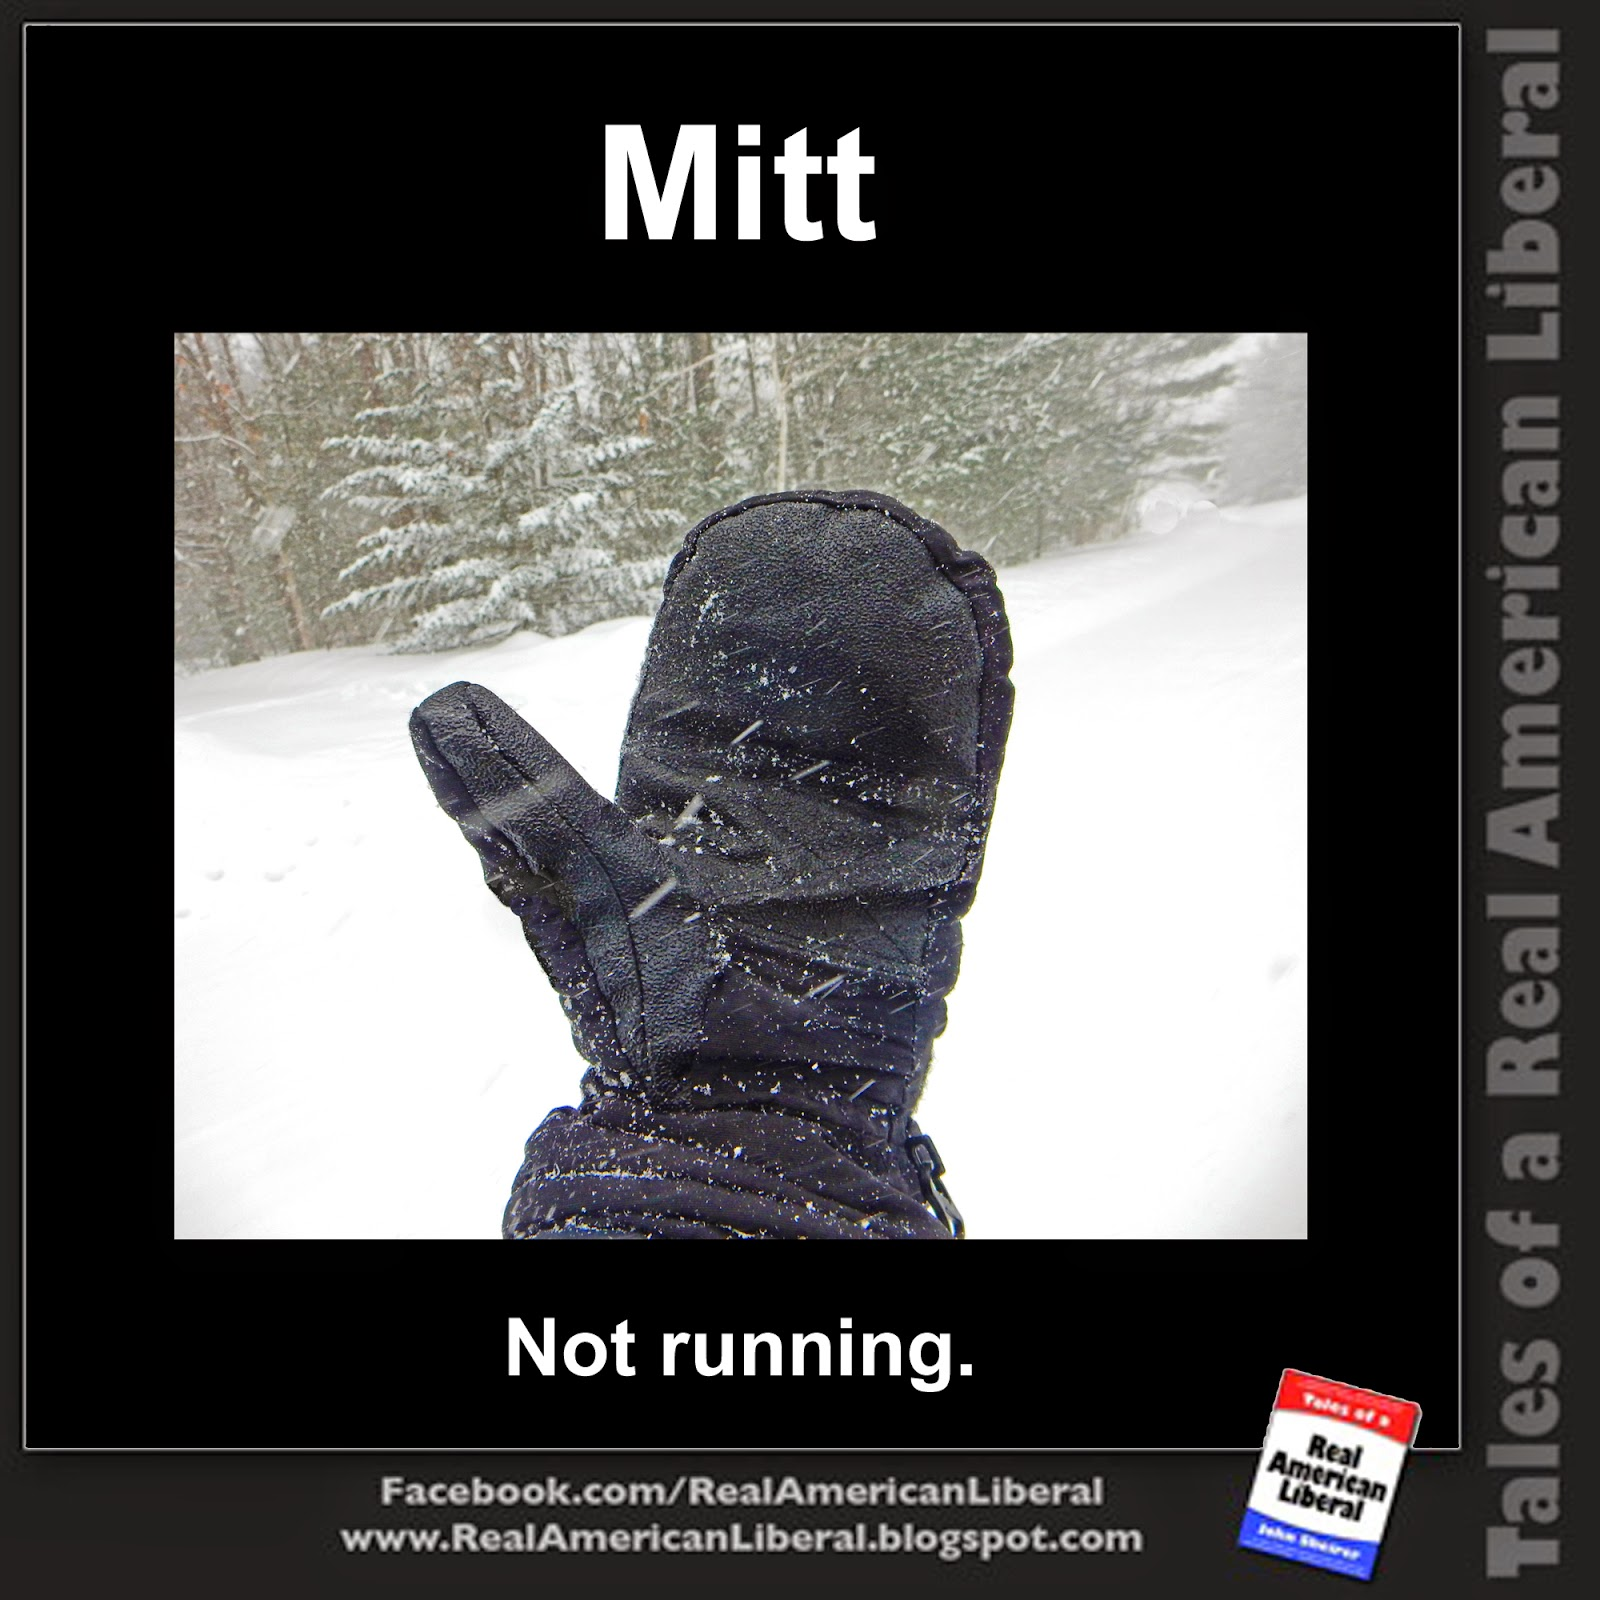 Make common sense common again greetings from snowbound greetings from snowbound massachusetts where thankfully mitt romney will never be governor again and will never ever never be president m4hsunfo